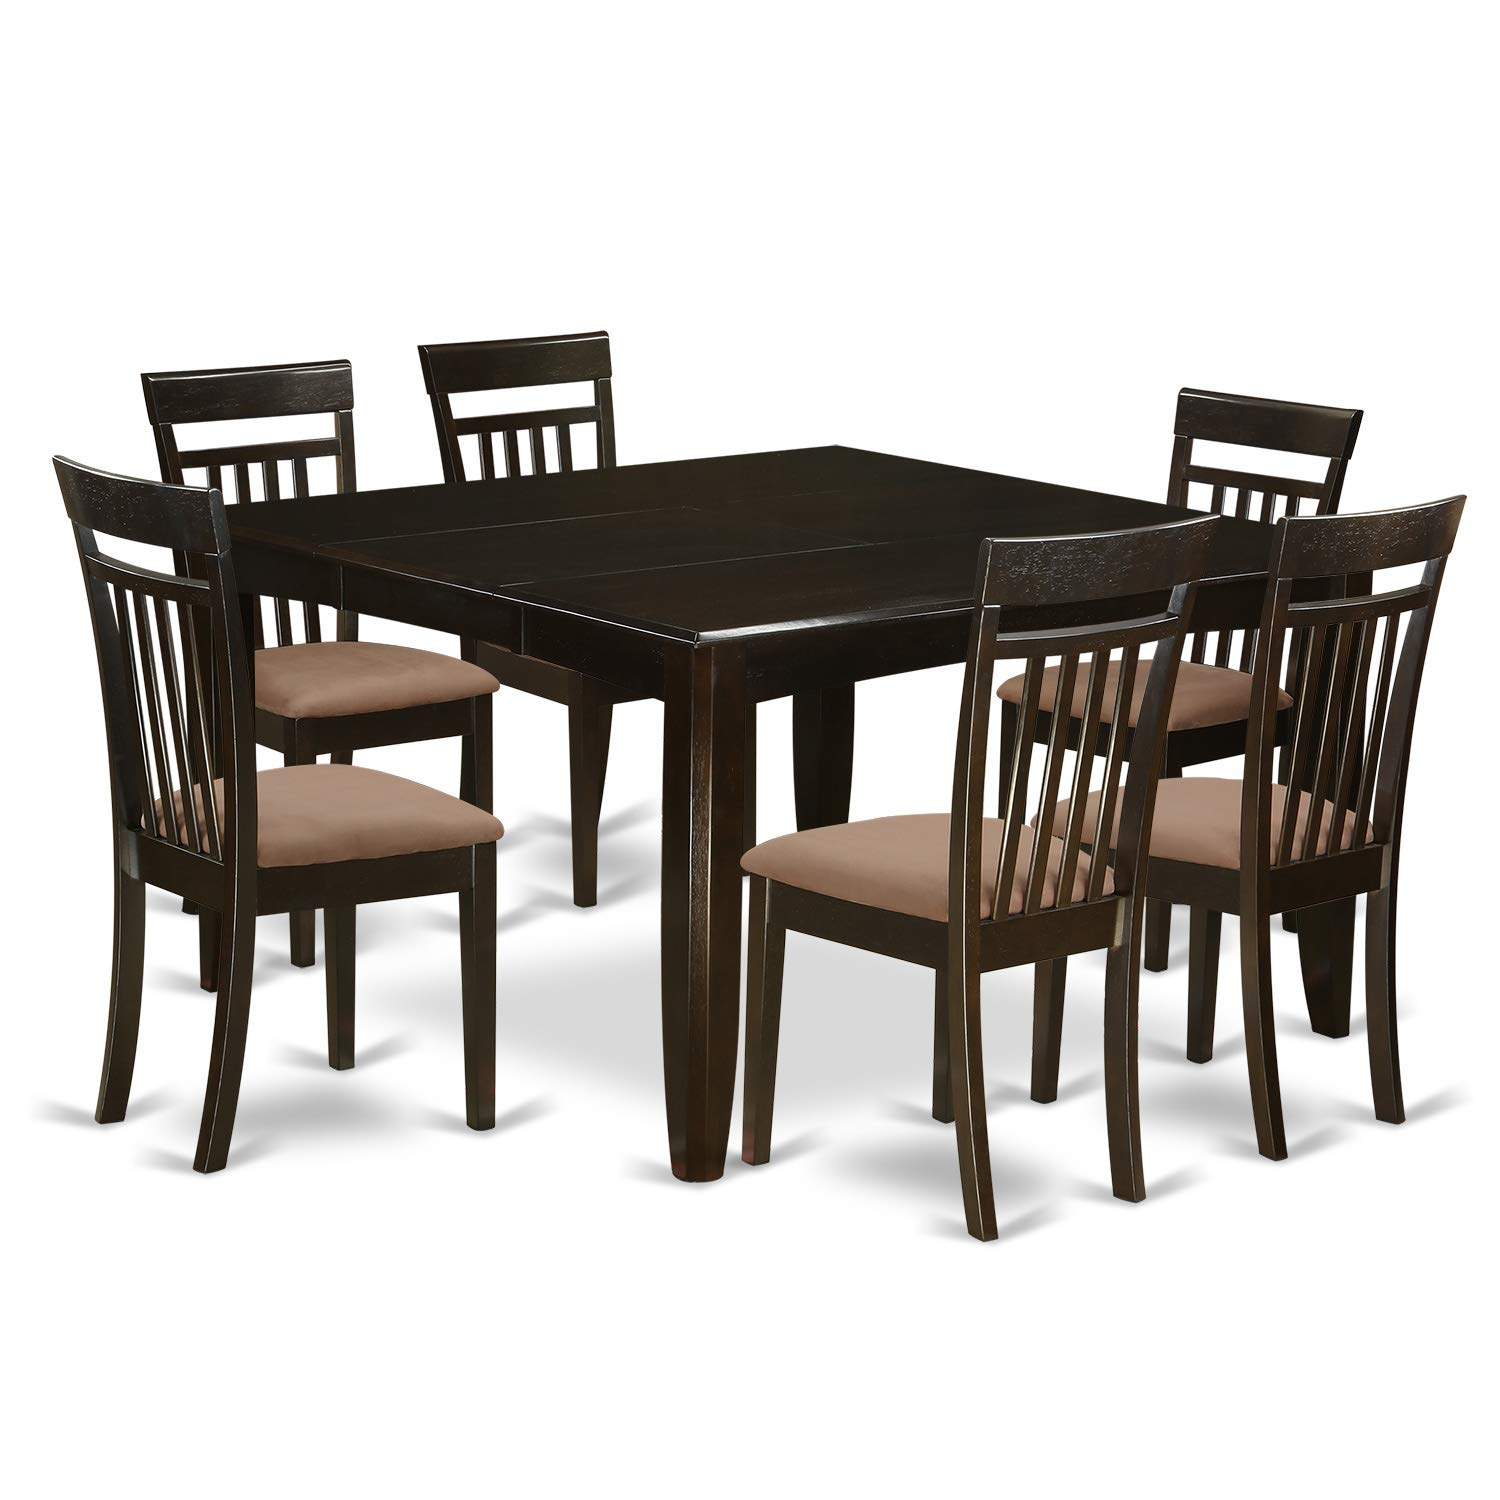 PFCA7-CAP-C 7 PC Dining room set for 6-Dinette Table with Leaf and 6 Dinette Chairs.